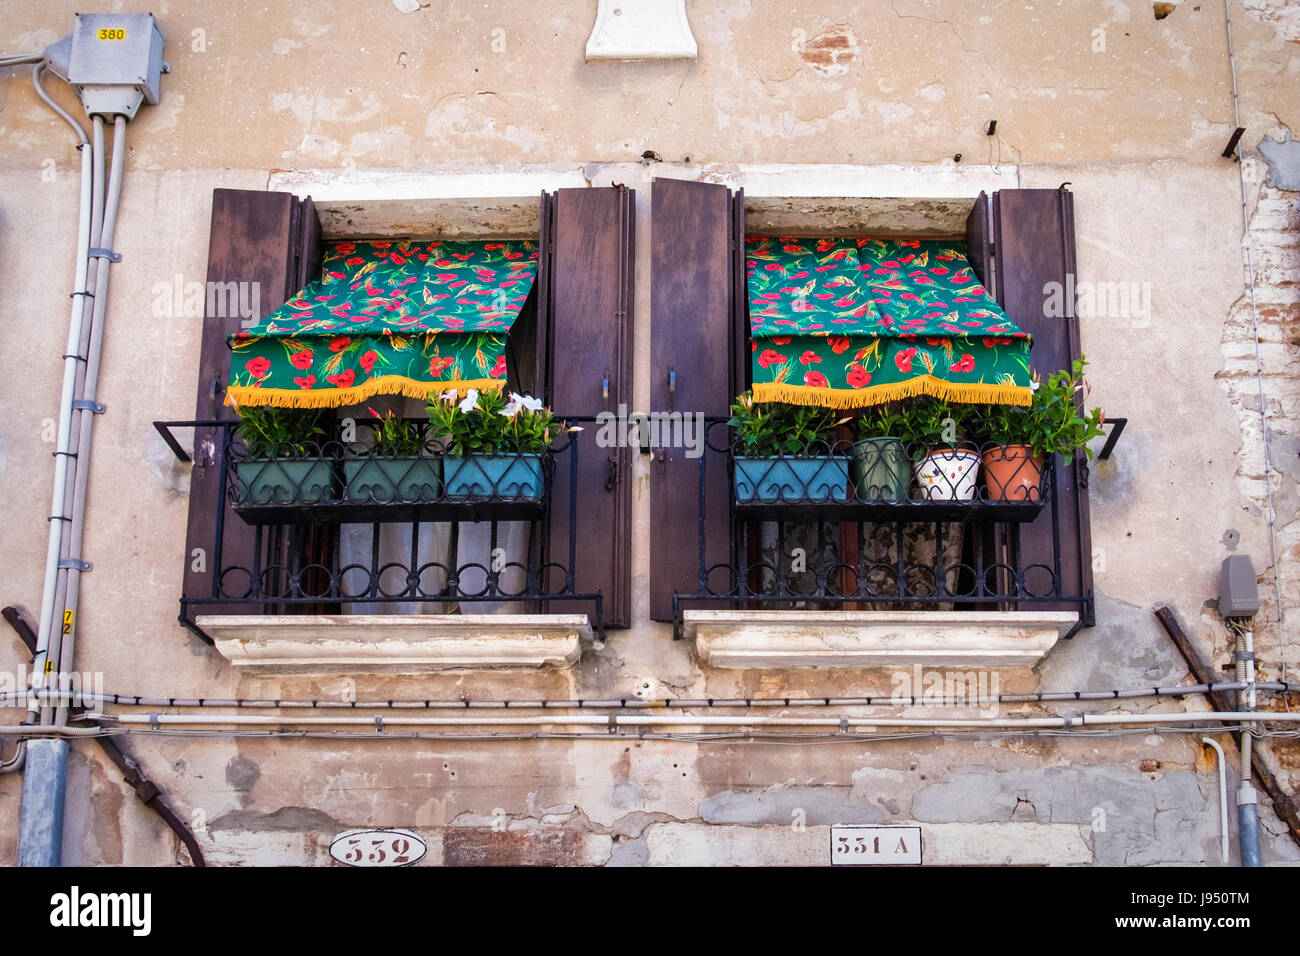 Venice,Castello,Urban landscape,Venetian house detail,windows with flower pattern awning,flower pots,Wrought iron - Stock Image